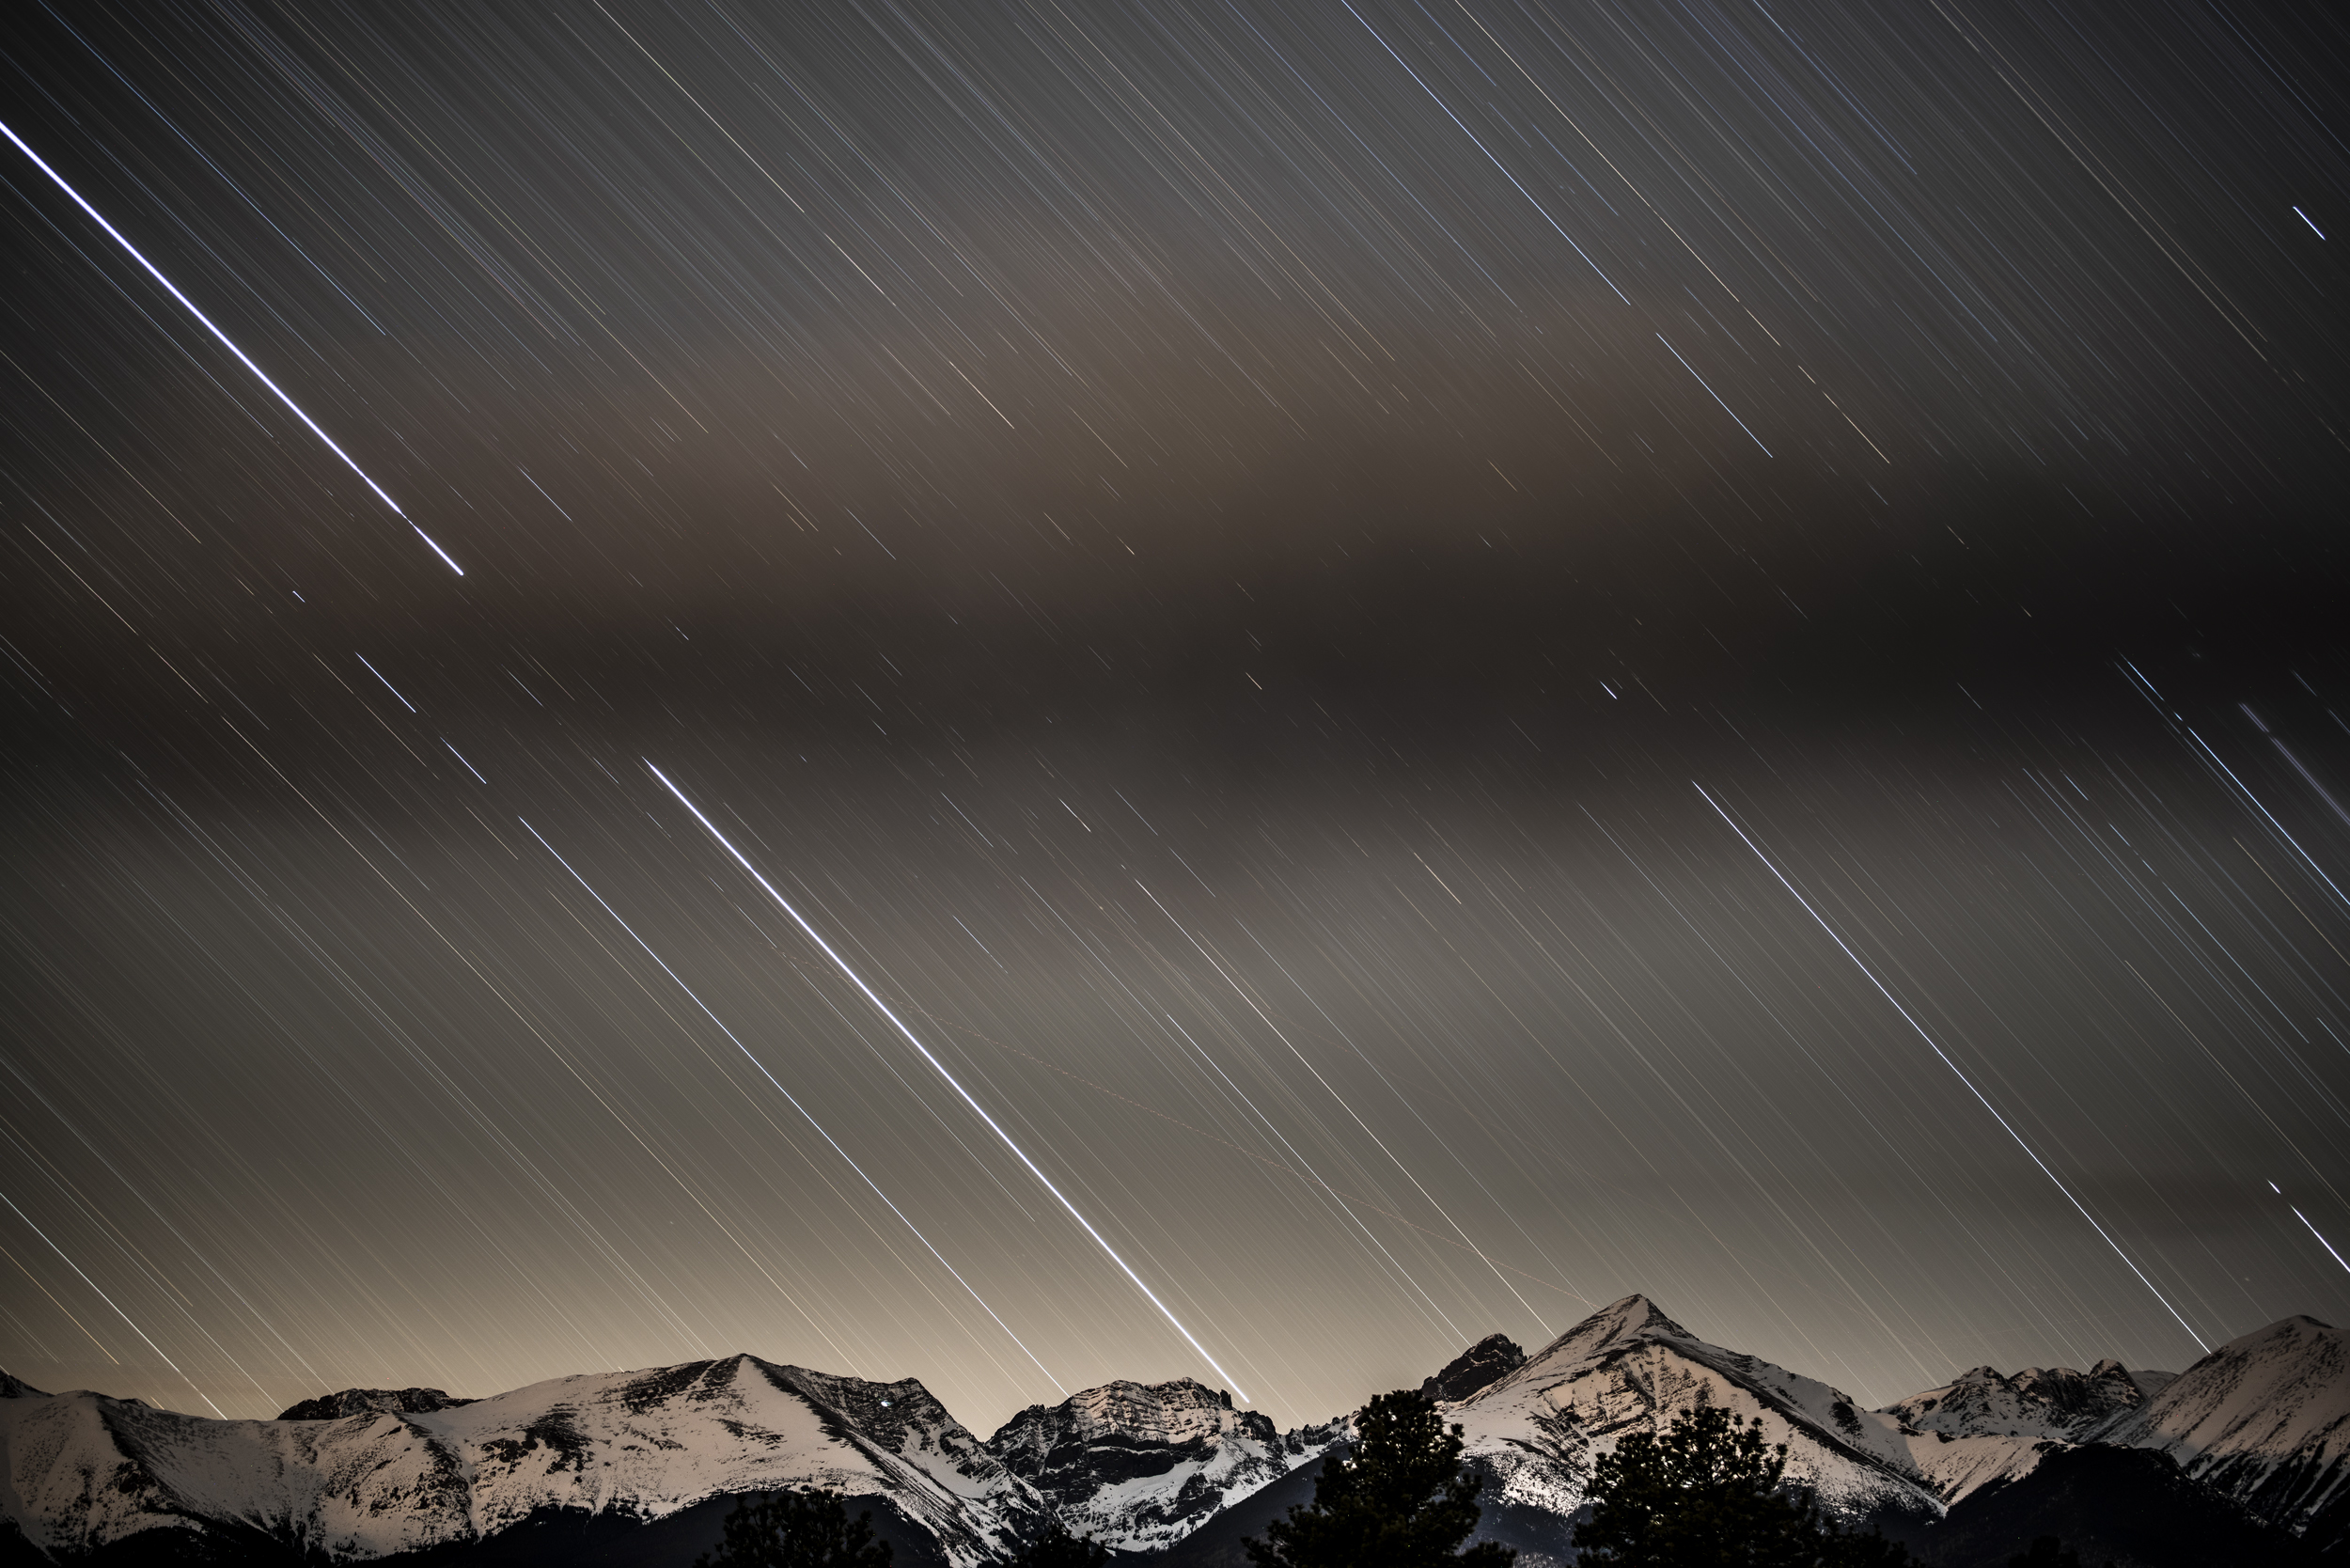 Star Trails over Rocky Mountains